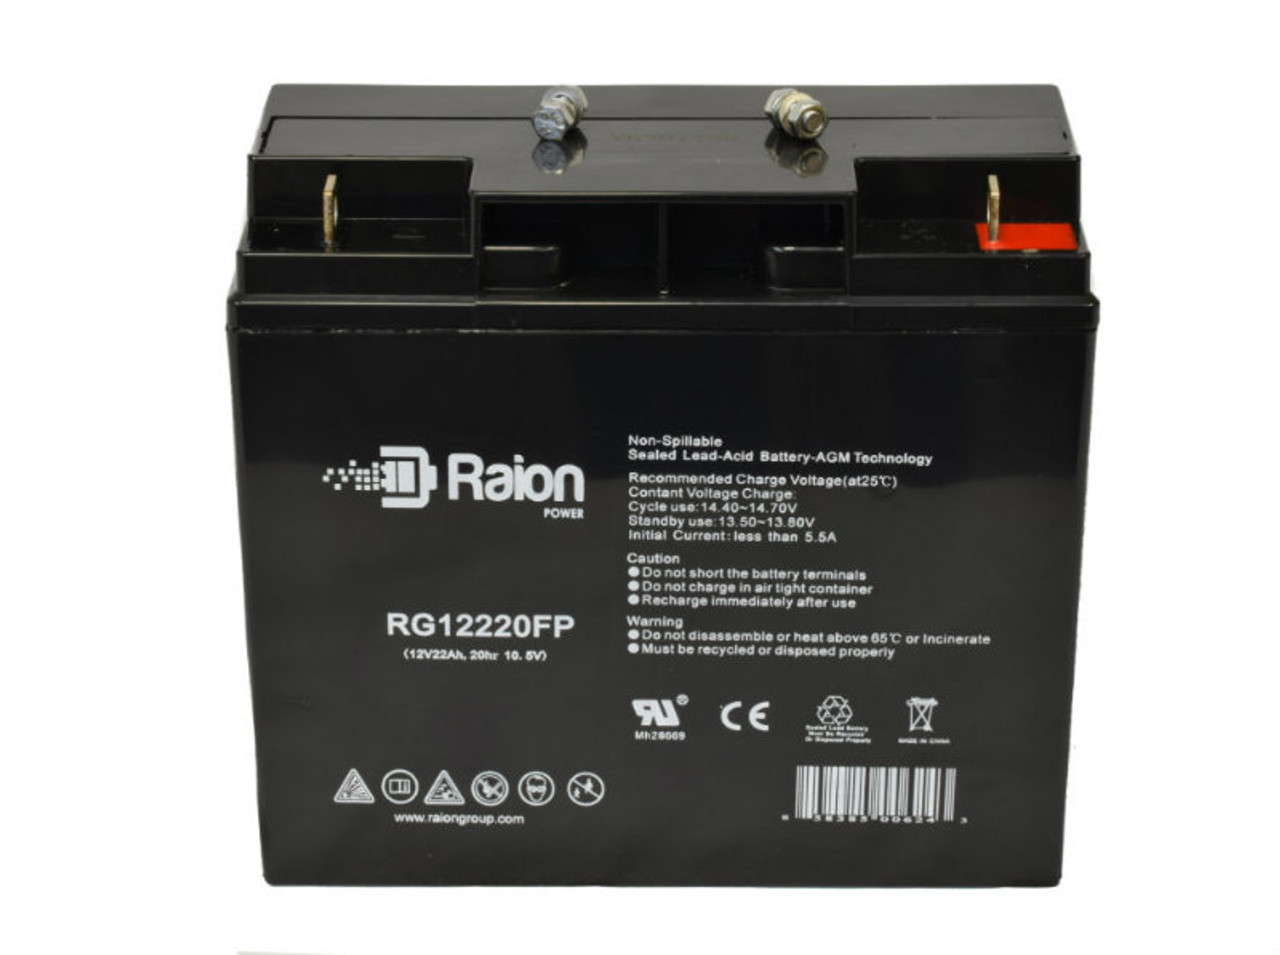 RG12220FP Sealed Lead Acid Battery Pack For Merits P320-Junior Mobility Scooter